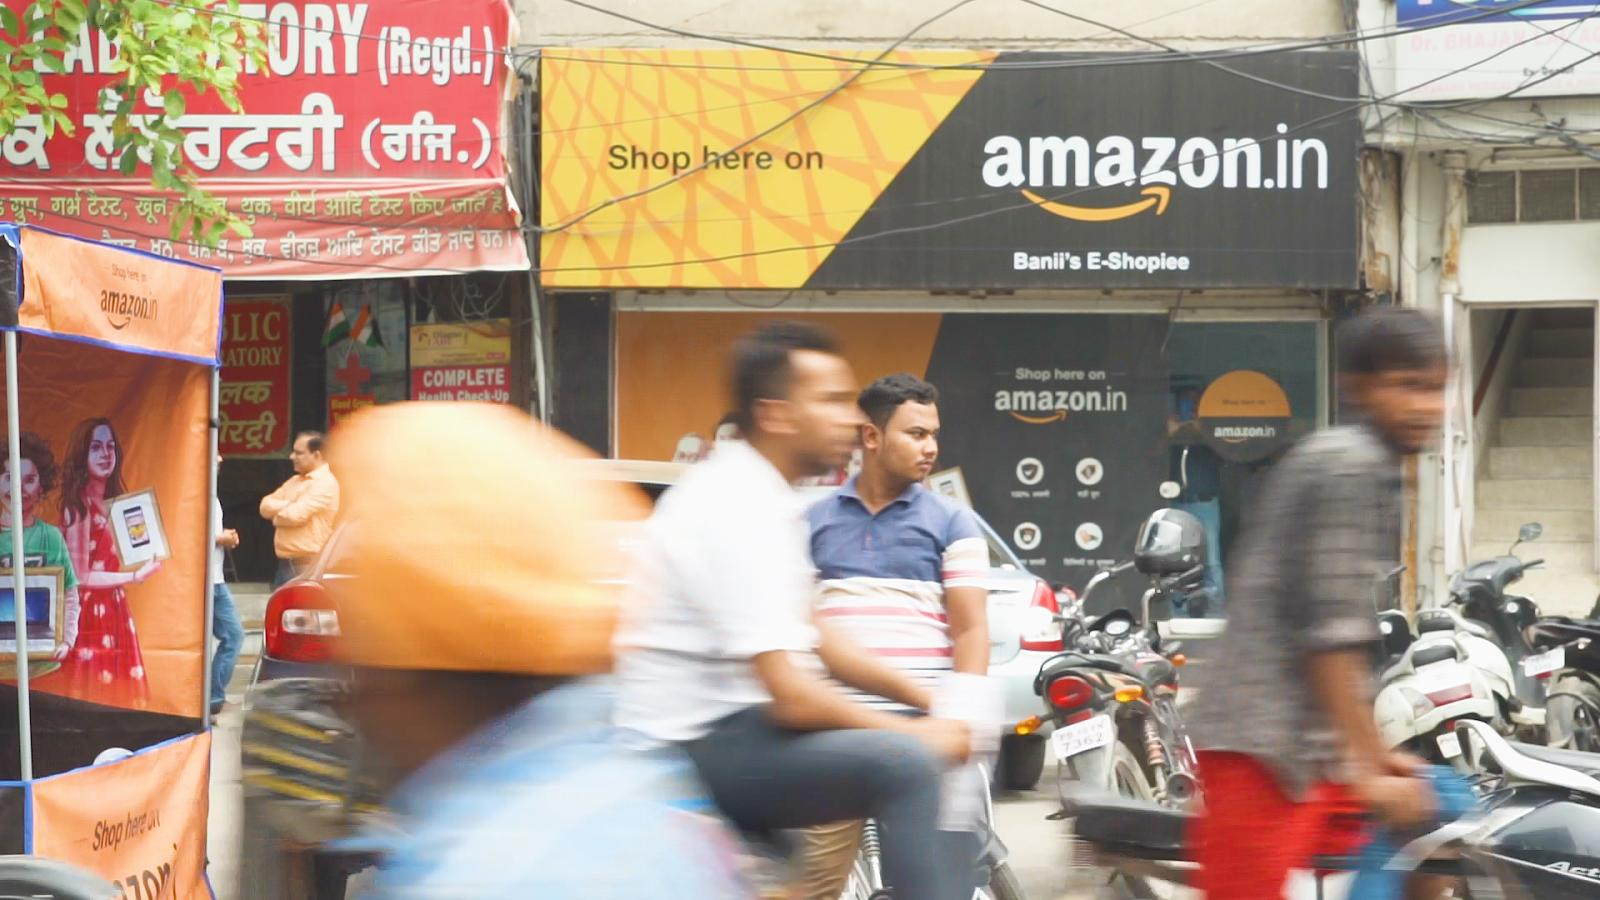 a8aa9c6f2bd Amazon India s stores and delivery network help it fight Flipkart ...